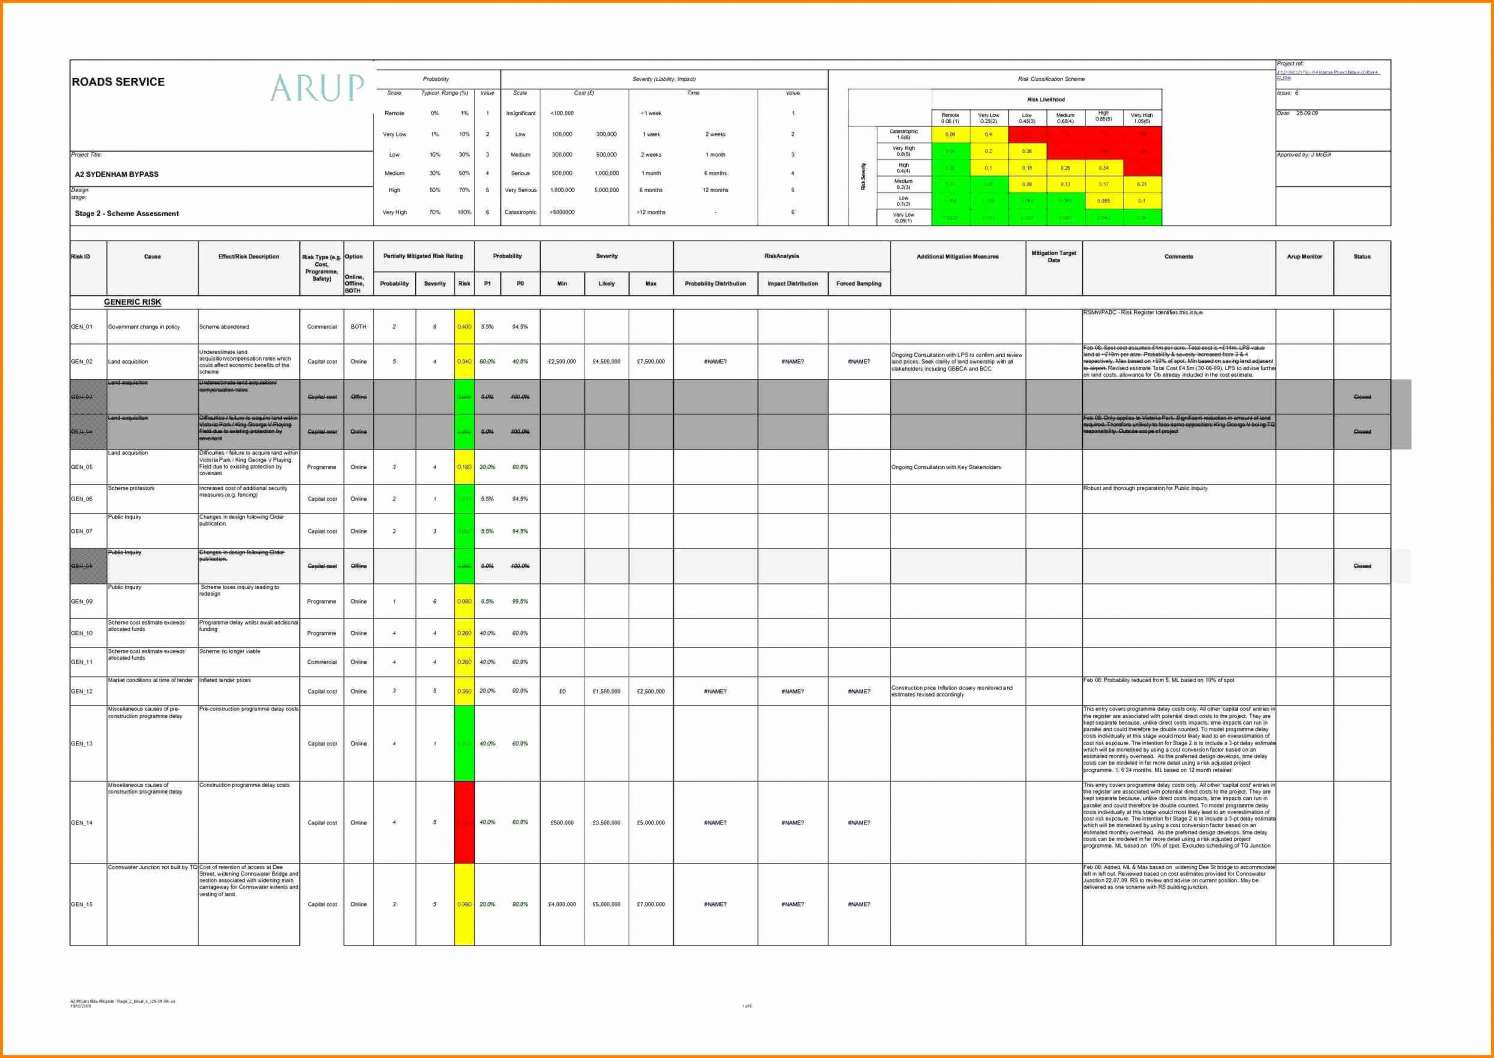 resource allocation template Melo.in tandem.co